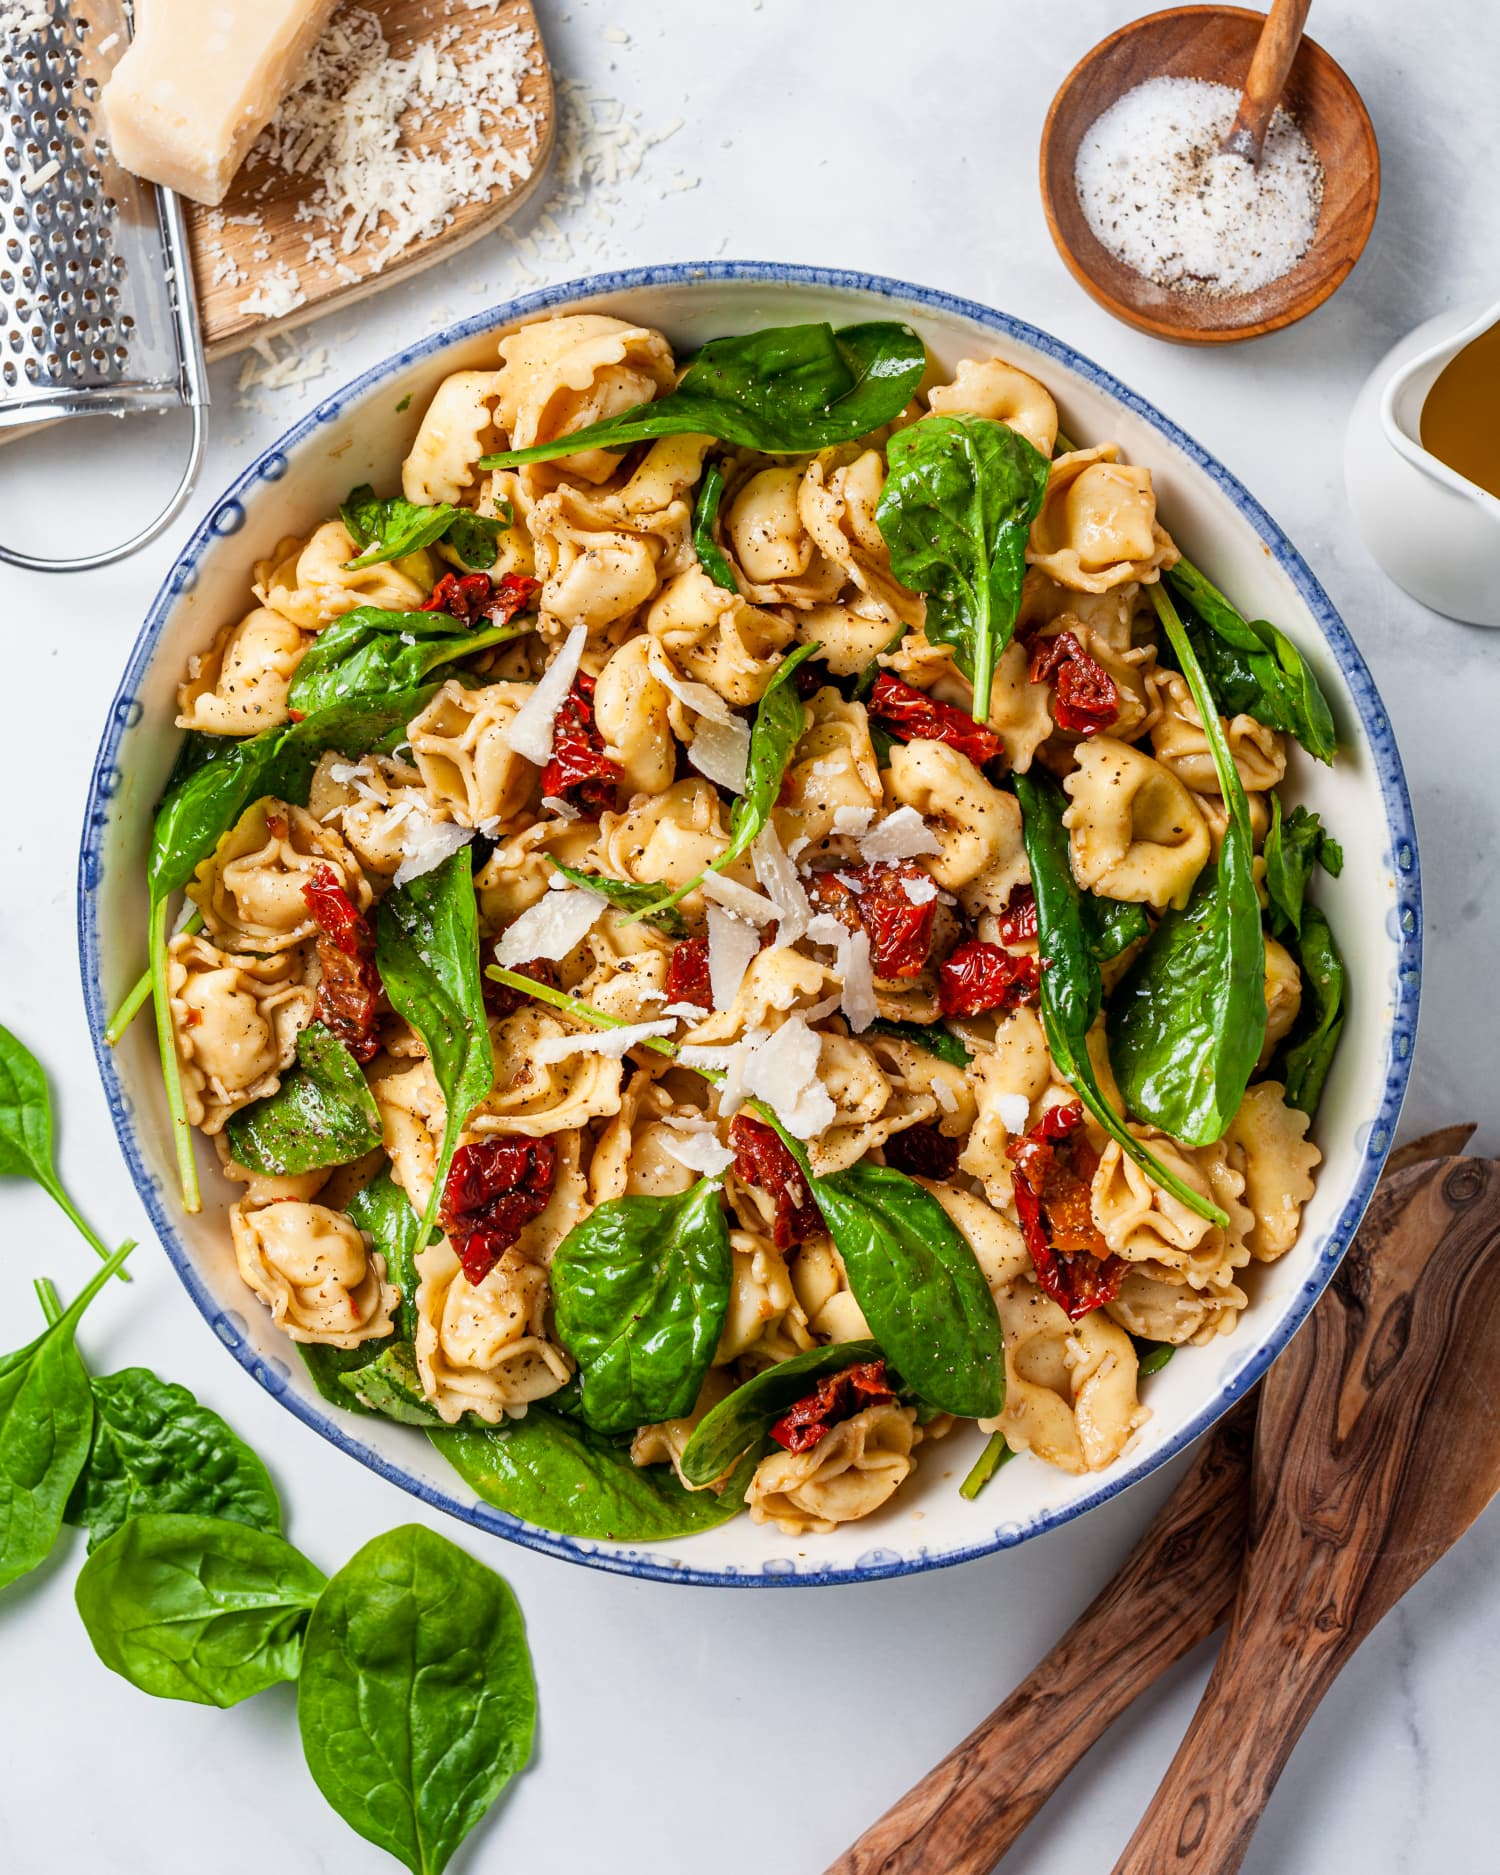 We Can't Stop Making This Dreamy Pasta Salad